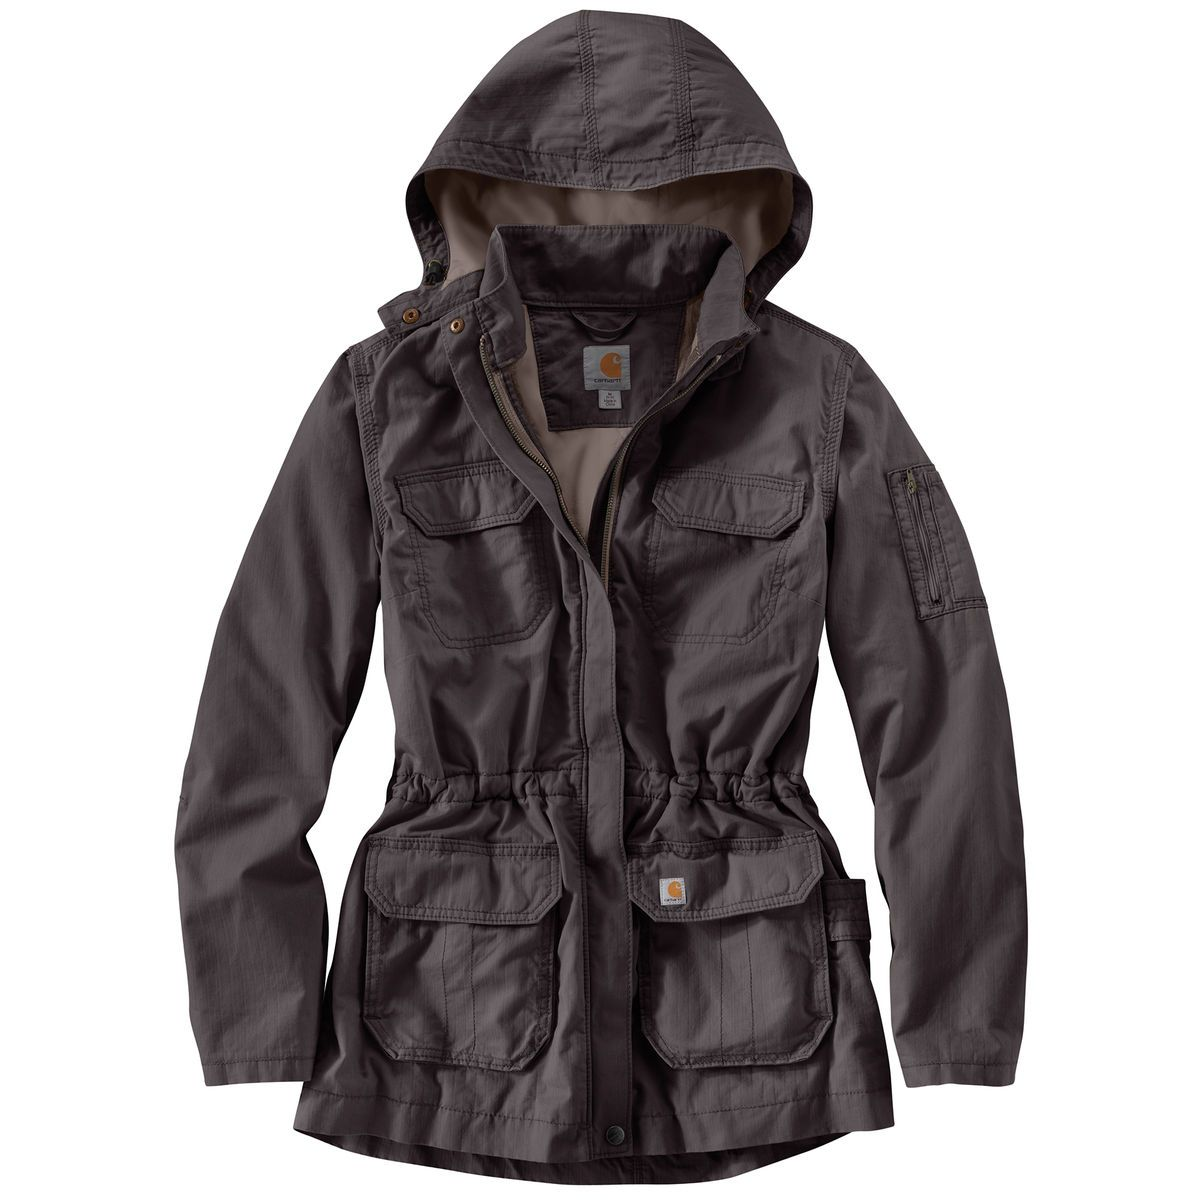 Gander Mountain Men's Thundercloud II Rain Jacket In Anthracite - XL. The Ultimate Terrain Men's Thunder-cold II rain Jacket keeps you dry and comfortable even in a downpour. The lightweight full nylon ripstop shell is treated with a DWR finish to help keep moisture a bay.